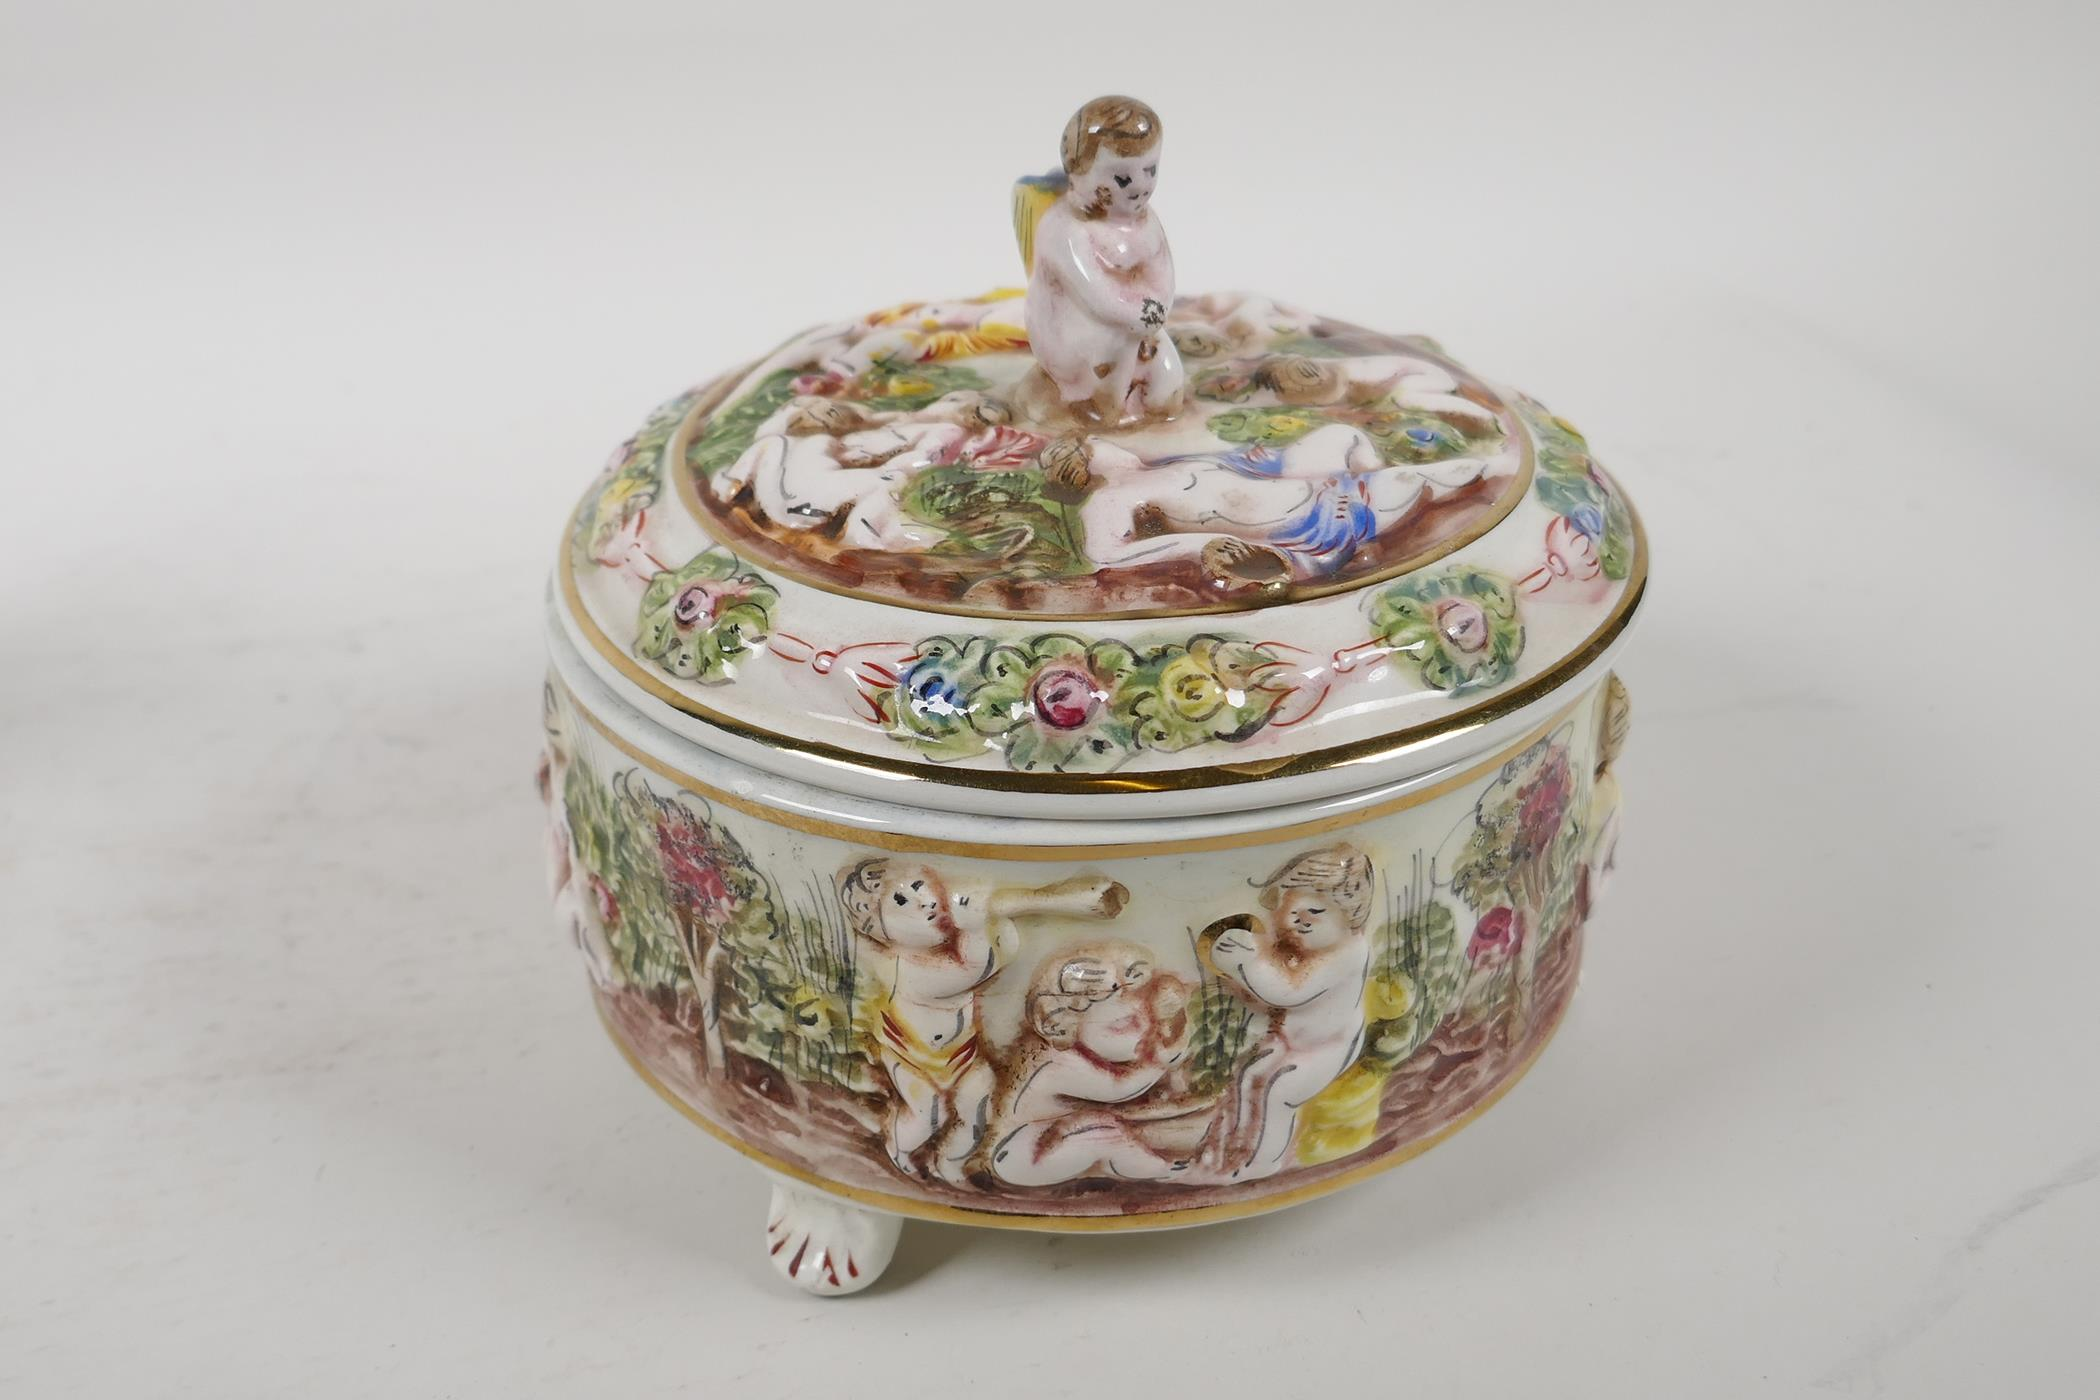 """A C19th continental porcelain inkwell modelled as two children on a seesaw, 6"""" high, and a - Image 3 of 6"""